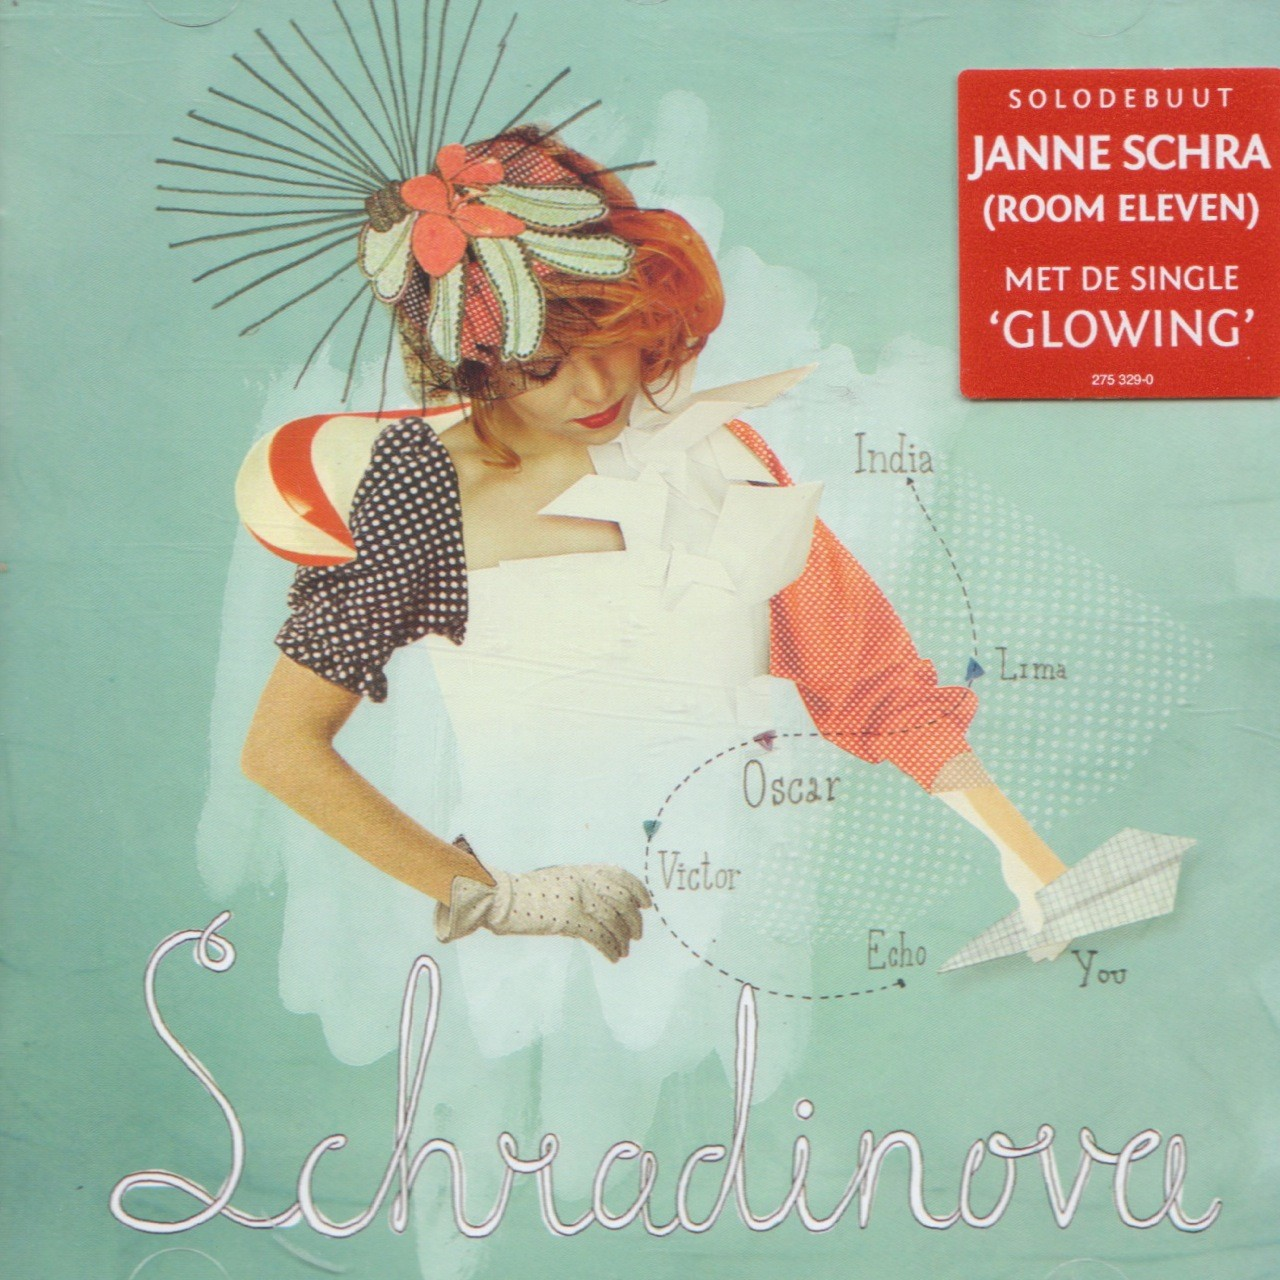 Schradinova - India Lima Oscar Vector Echo You